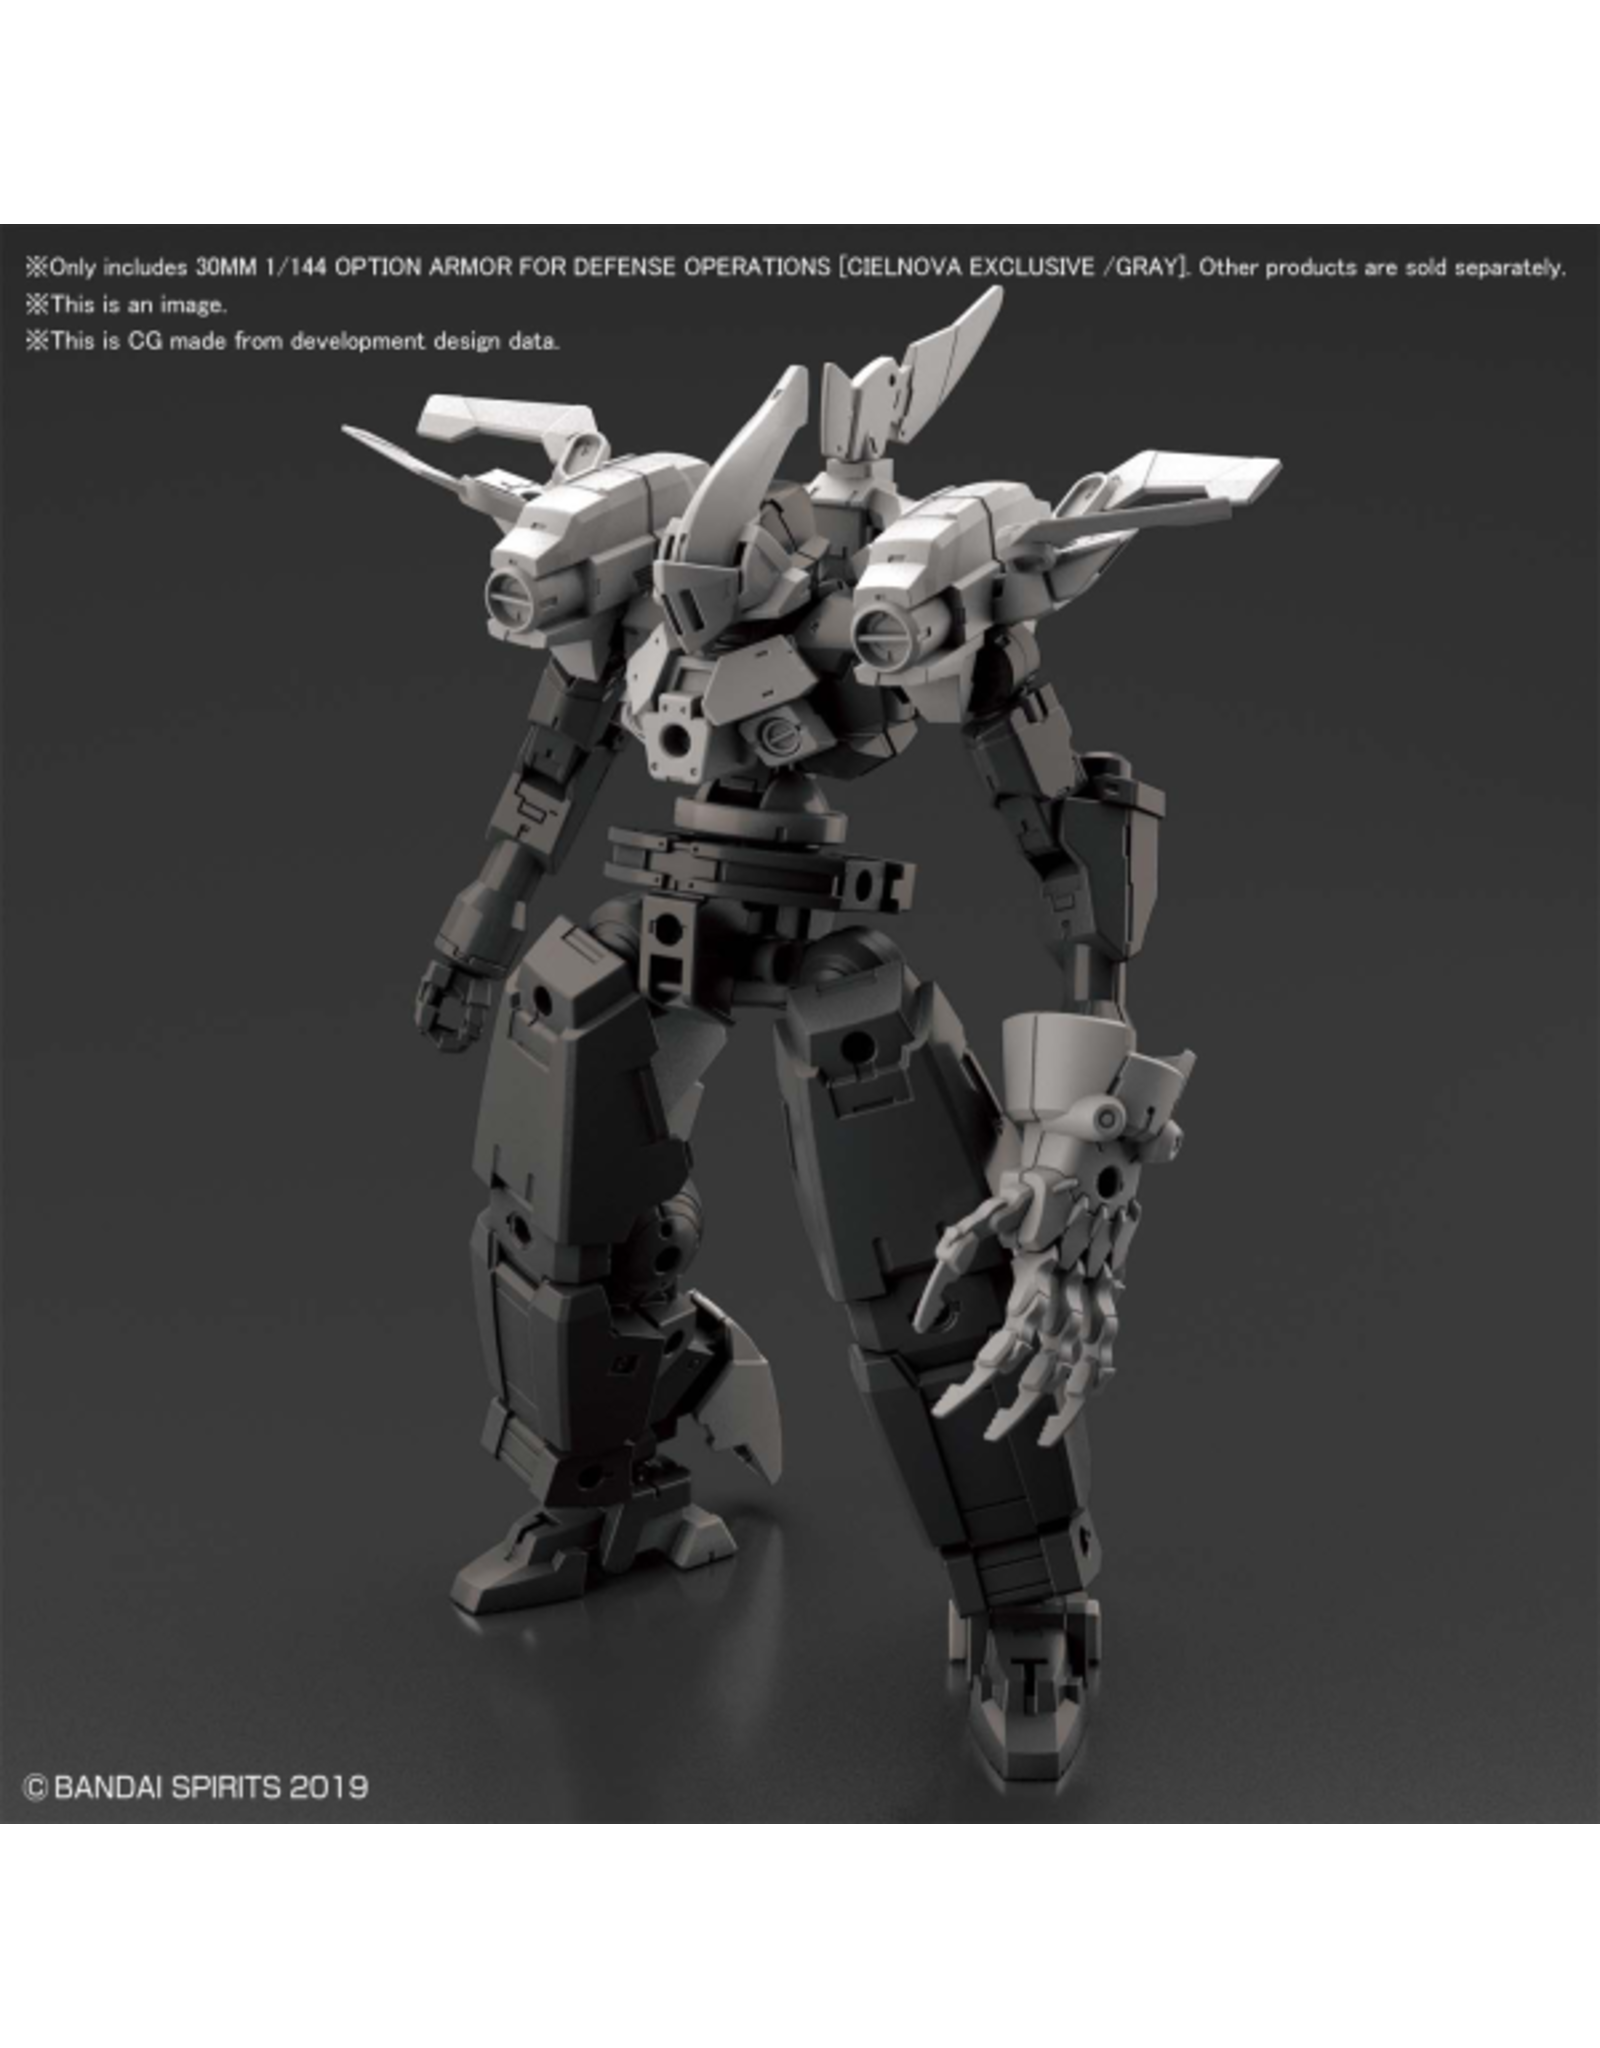 BANDAI 30MM 1/144 OPTION ARMOR FOR DEFENSE OPERATIONS [CIELNOVA EXCLUSIVE / GRAY]